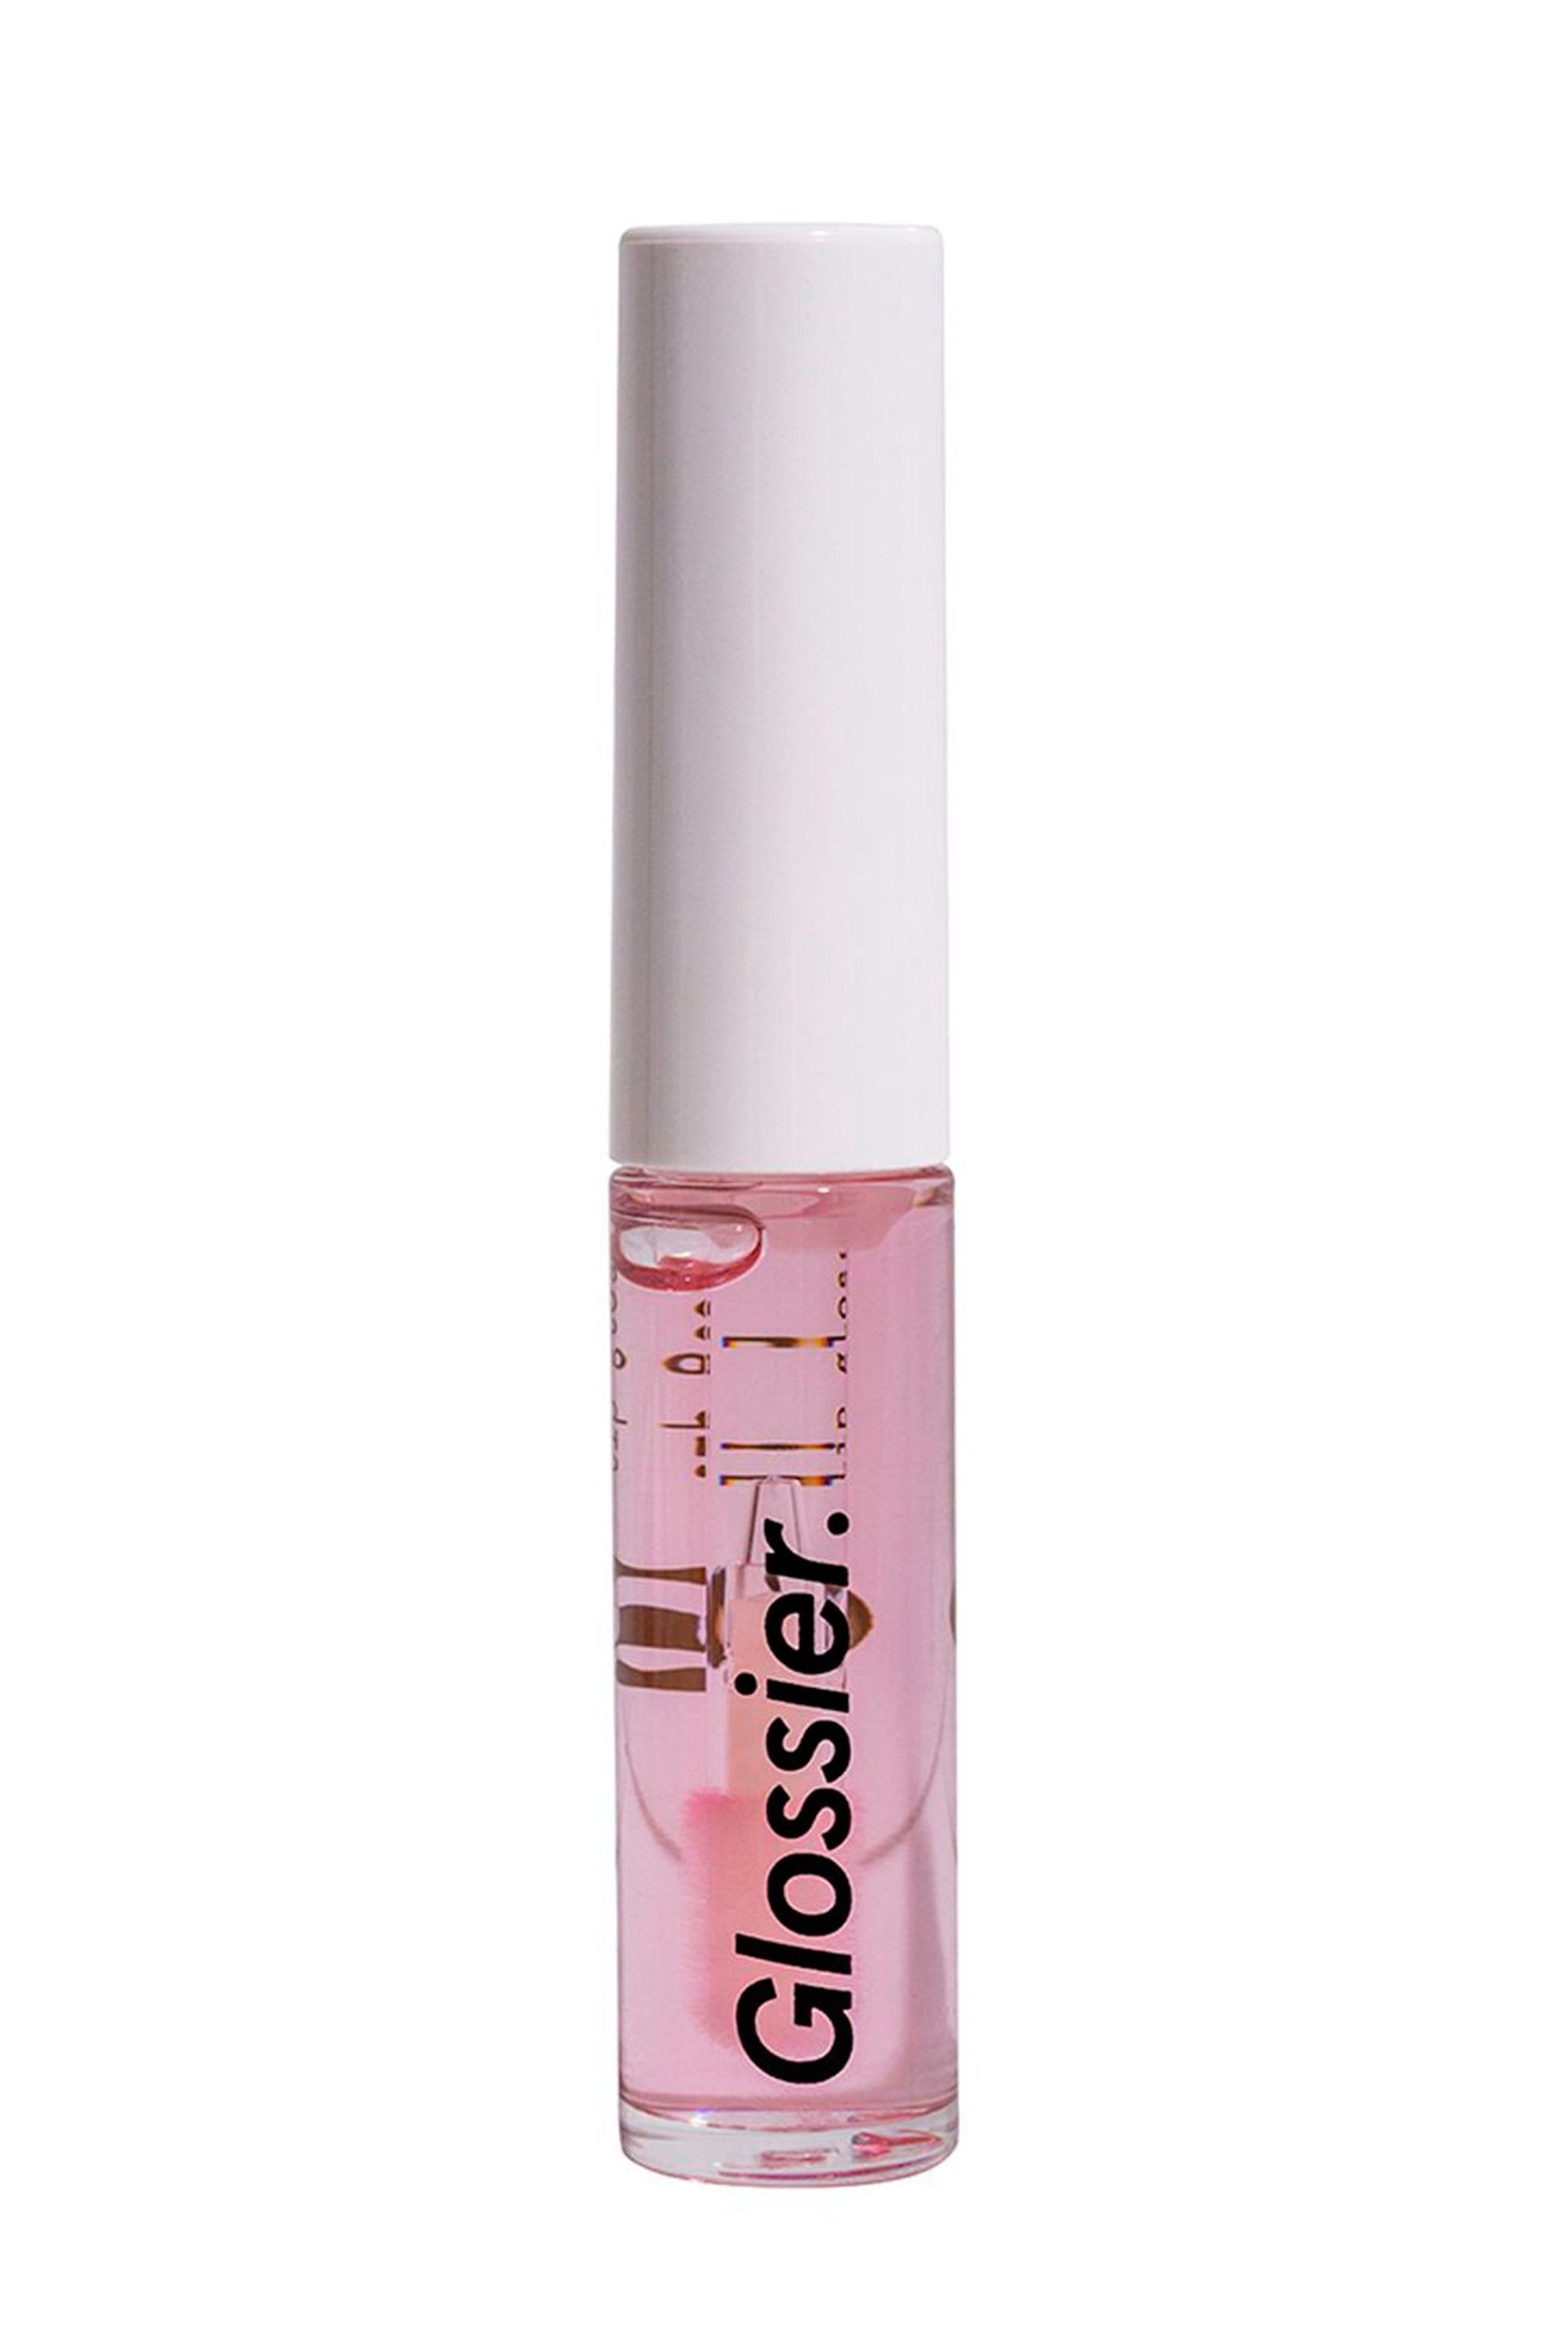 Super The 10 Best Clear Lip Glosses to Own, According to a Lip Gloss Addict EG-45